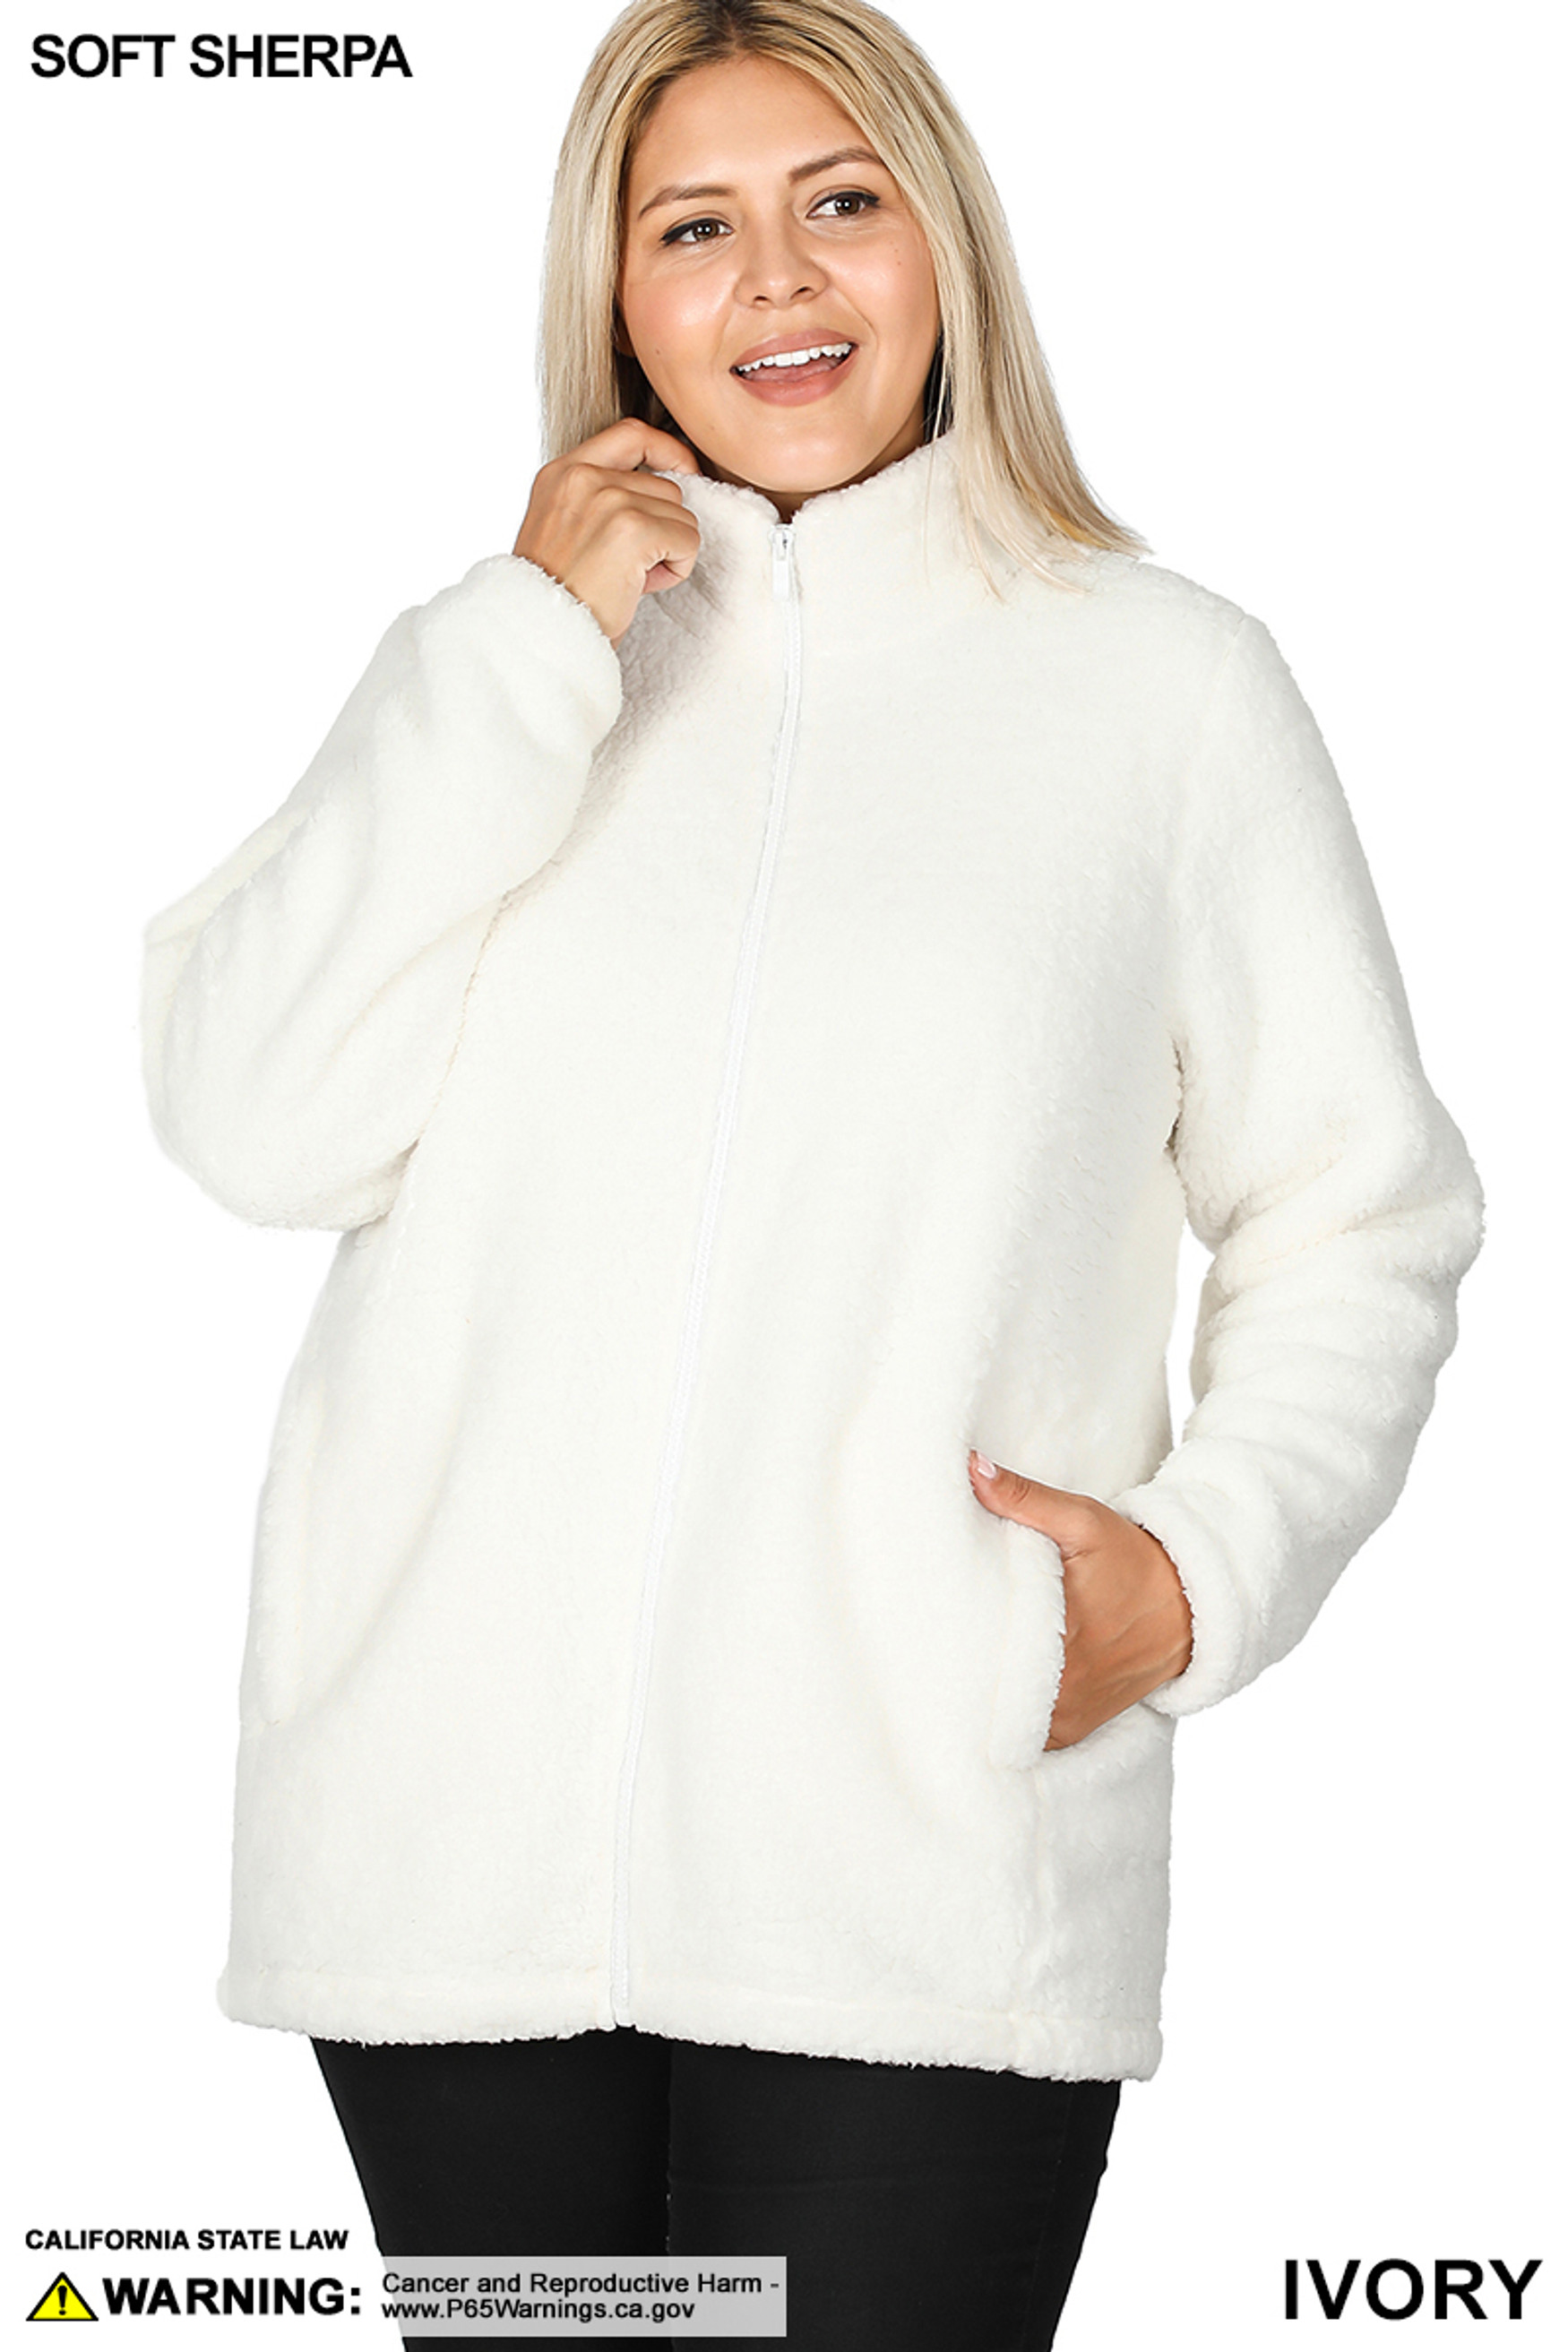 Front image of Ivory Sherpa Zip Up Plus Size Jacket with Side Pockets